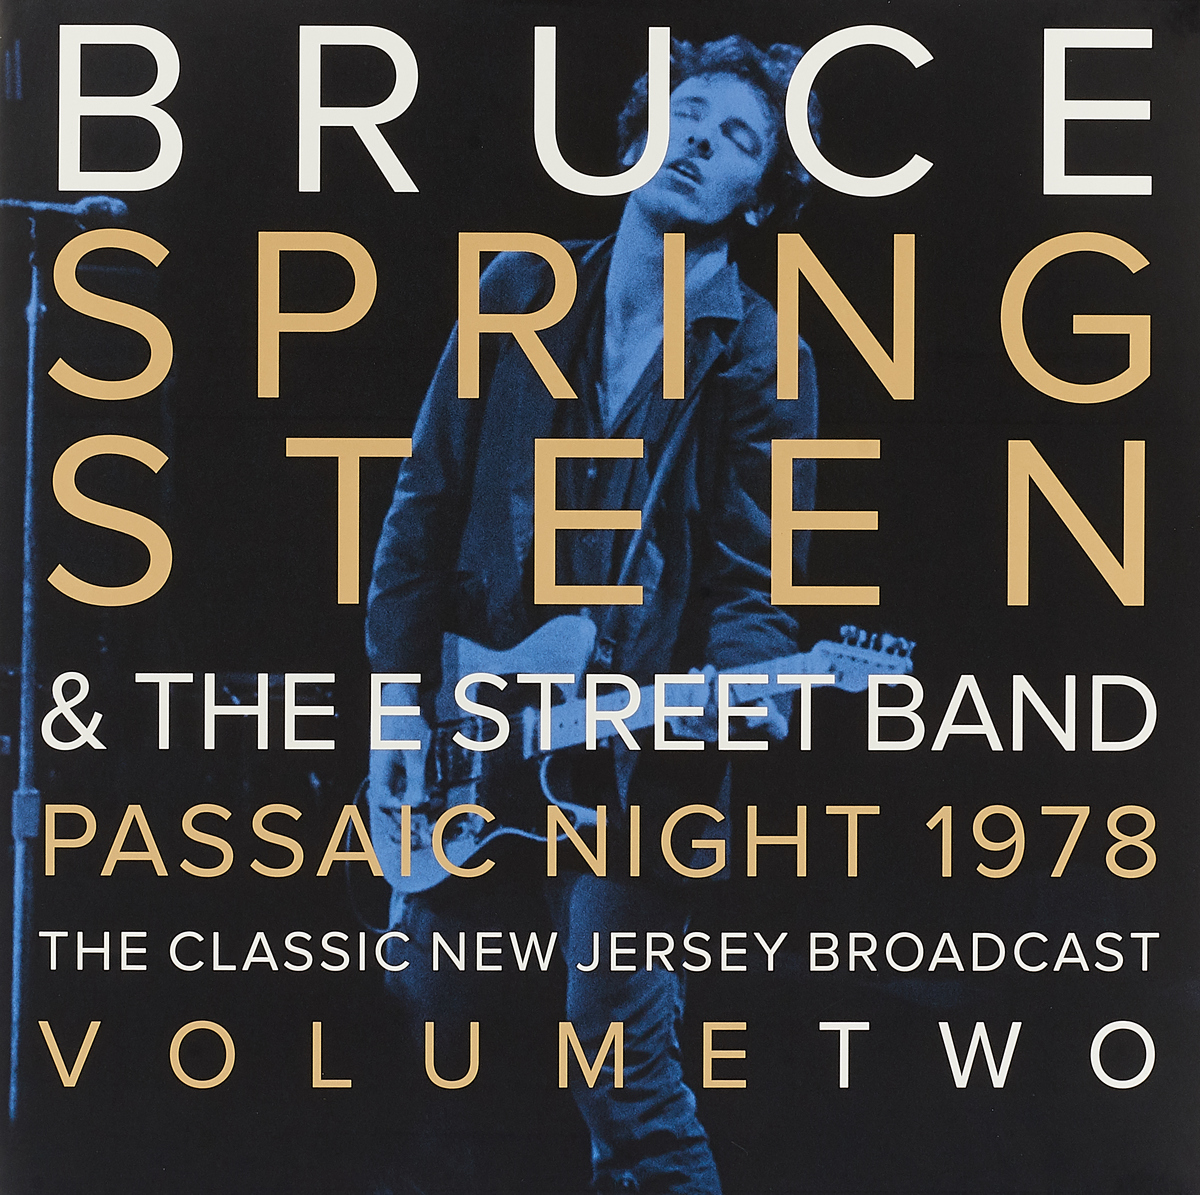 Брюс Спрингстин Bruce Springsteen. Passaic Night 1978 The Classic New Jersey Broadcast Volume Two (2 LP) the complete aliens omnibus volume two genocide alien harvest